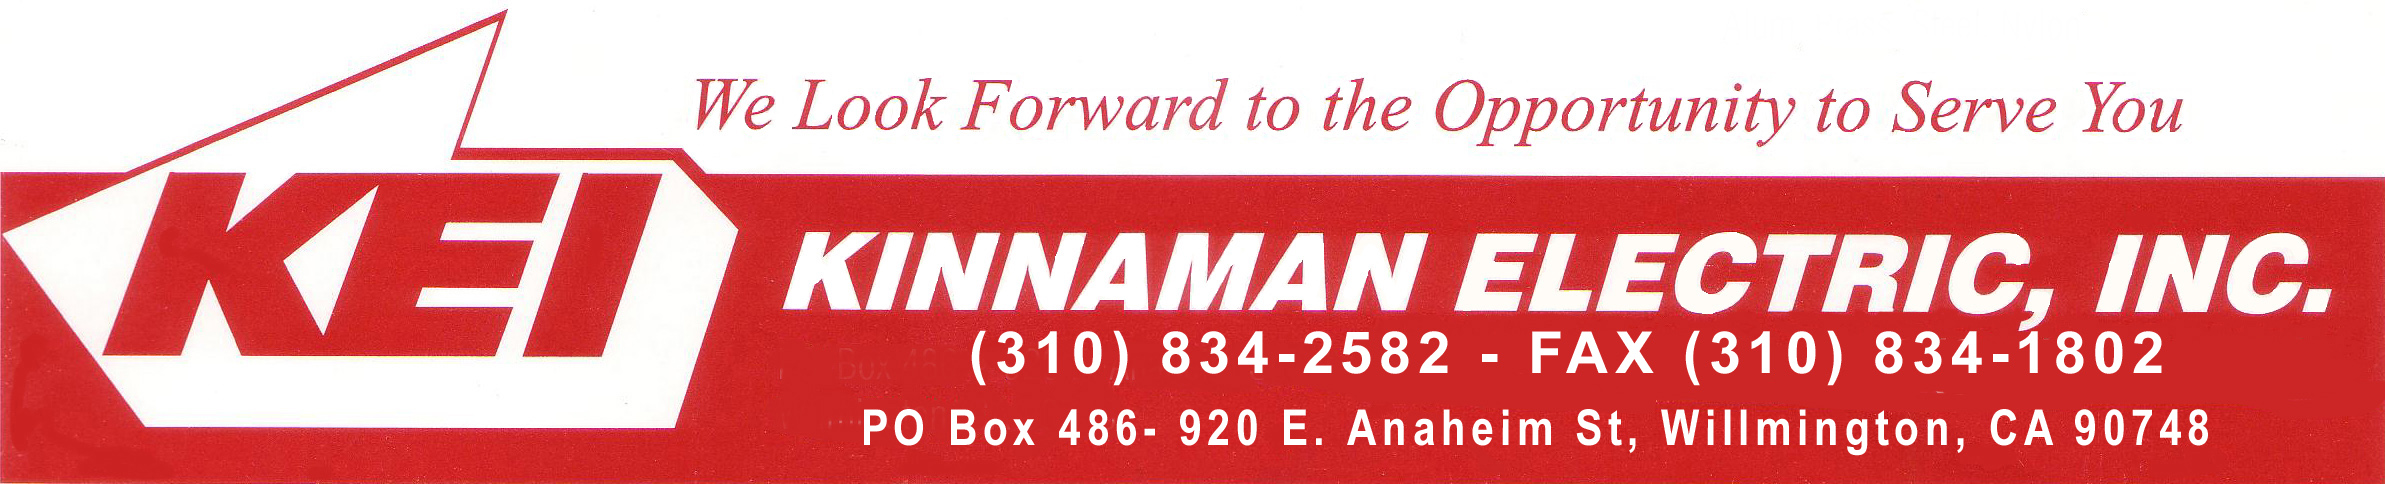 Kinnaman Electric, Inc.